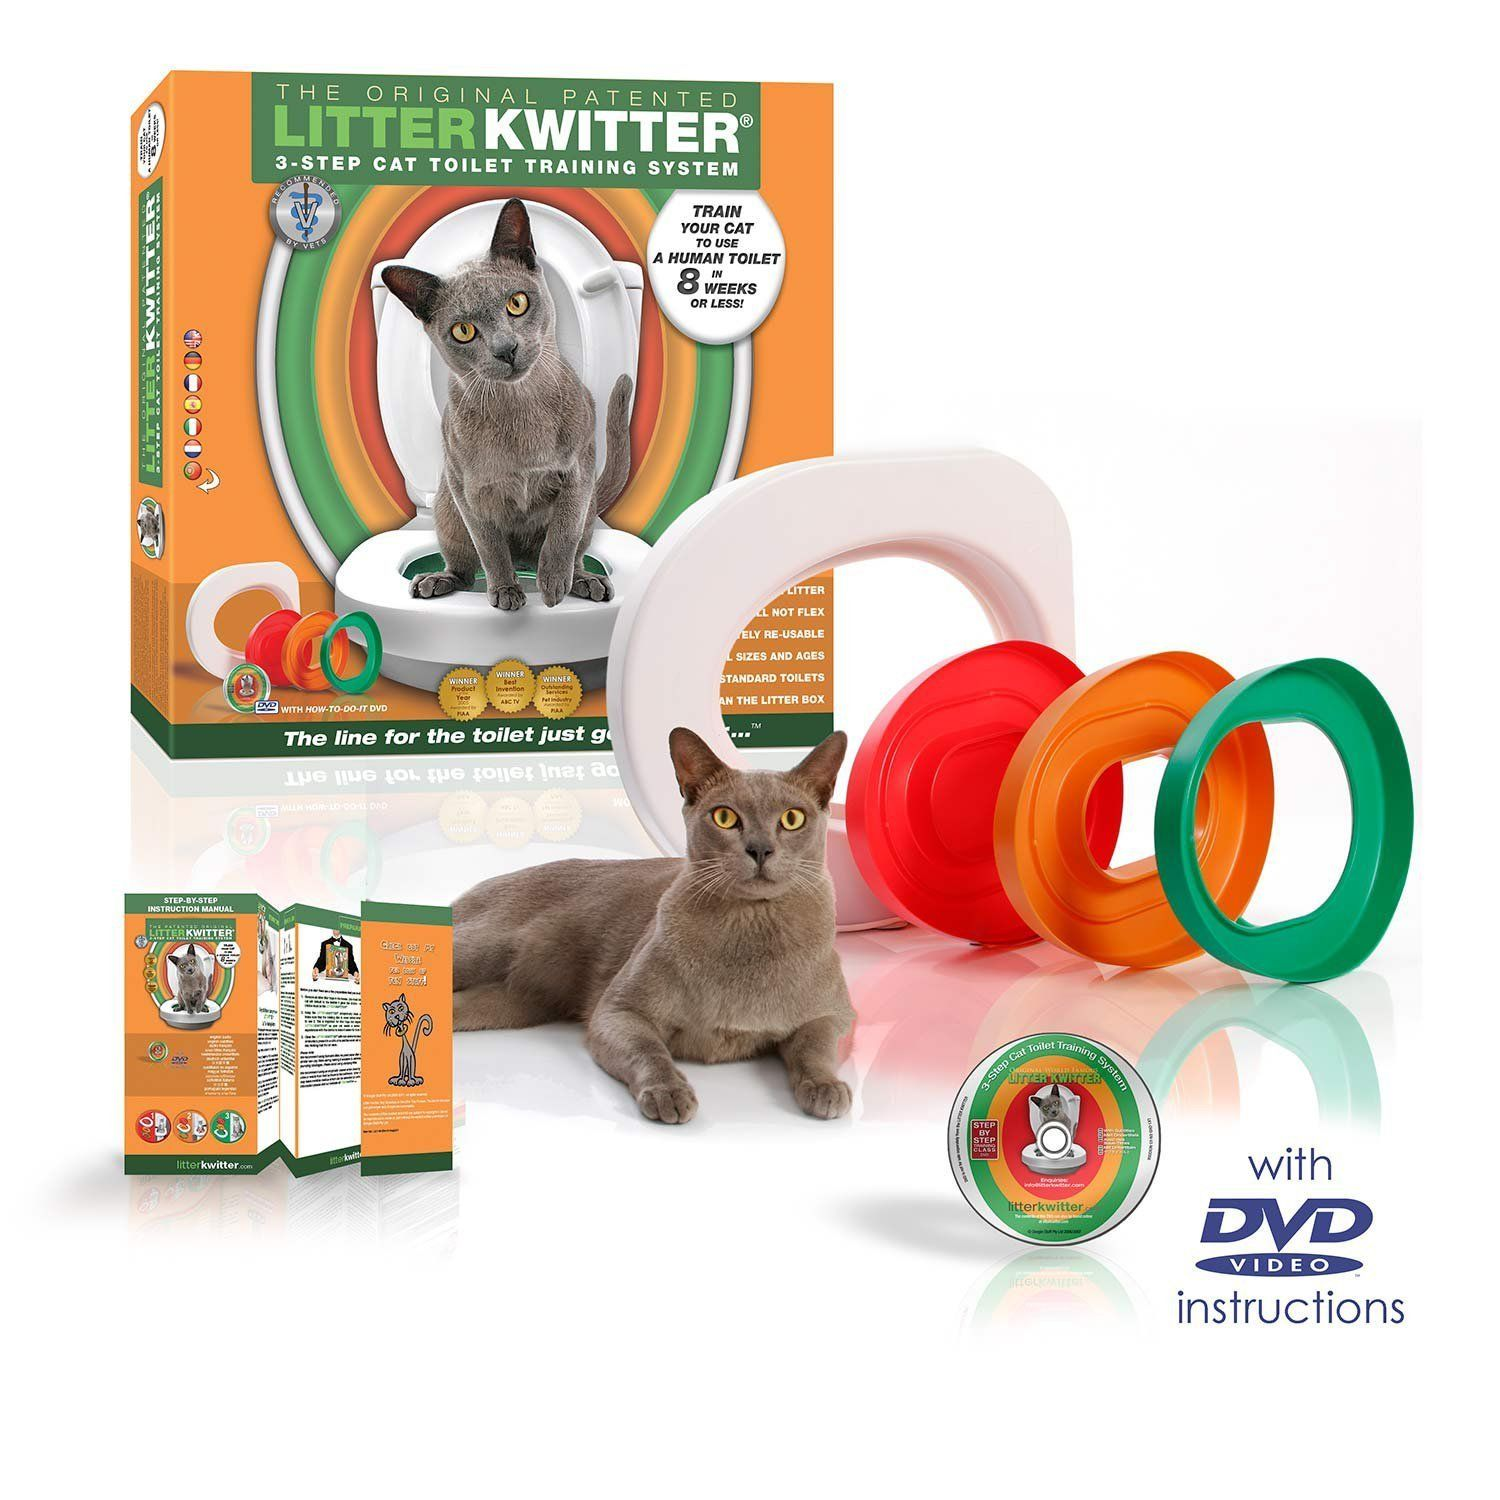 Litter Kwitter Toilet Training System Check Out This Great Product This Is An Amazon Affiliate Link Cat Toilet Training Cat Toilet Cat Training